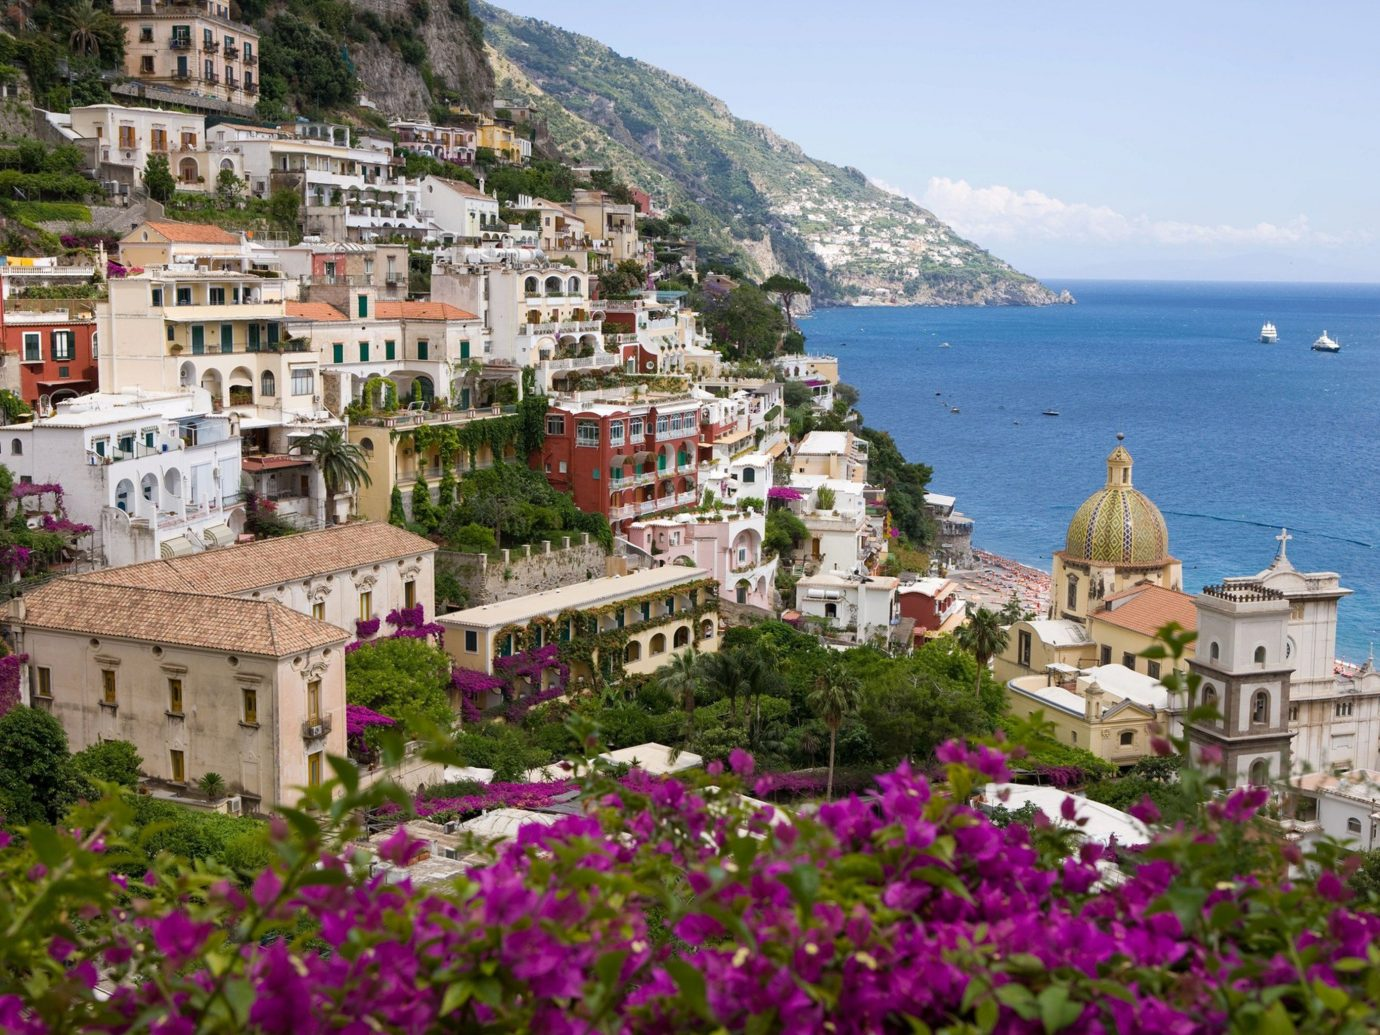 Hotels outdoor sky mountain flower Town Village vacation tourism Coast monastery Resort tours Sea old Garden beautiful surrounded